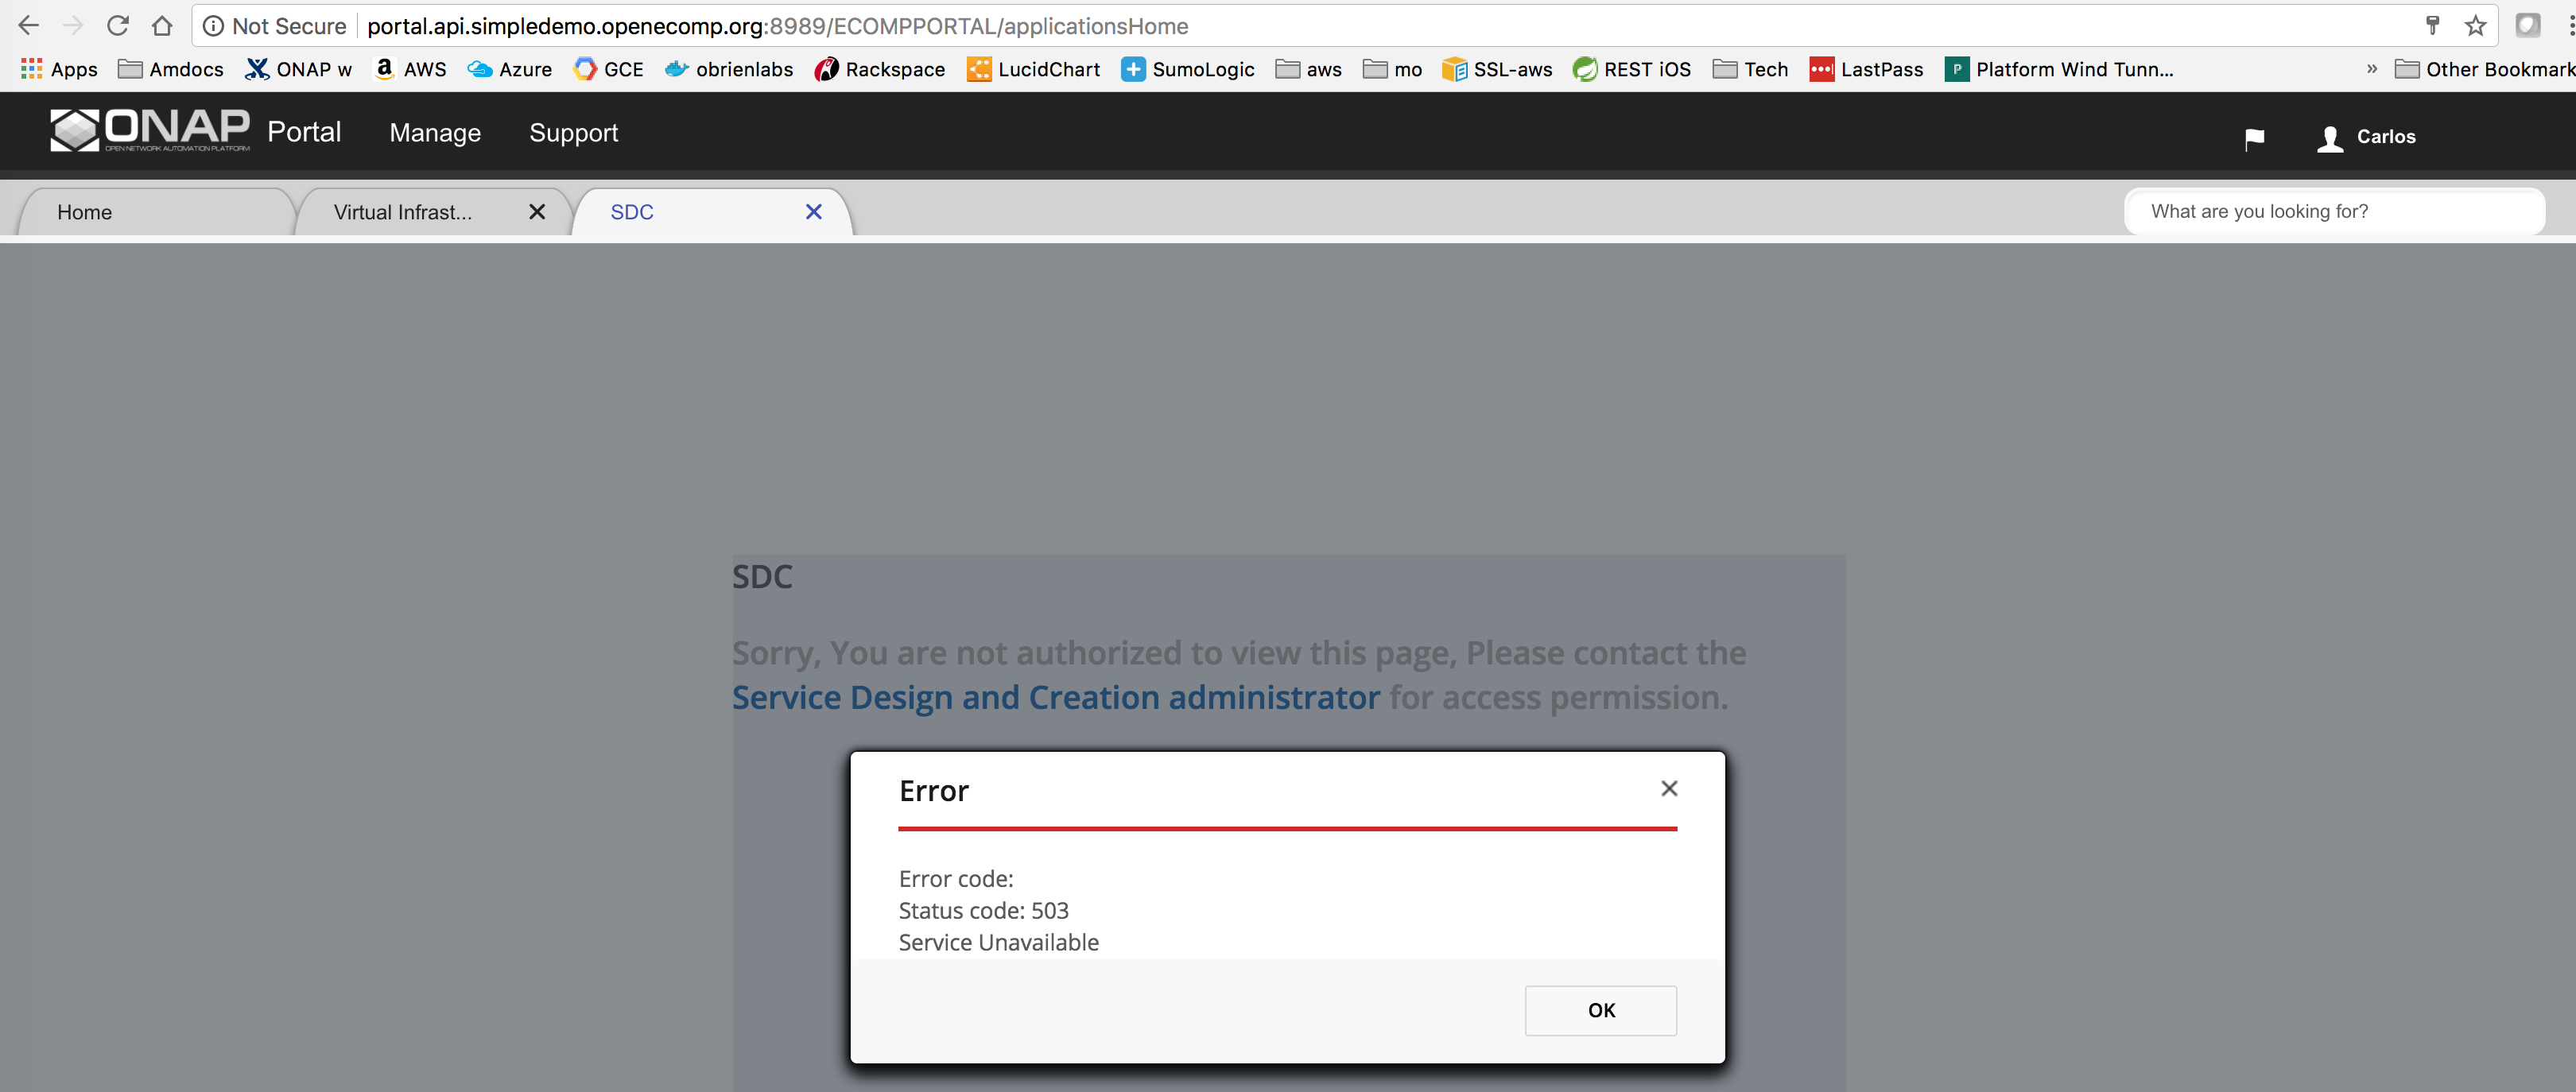 SDC-268] sdc frontend docker container exited in ONAP SDC VM - ONAP